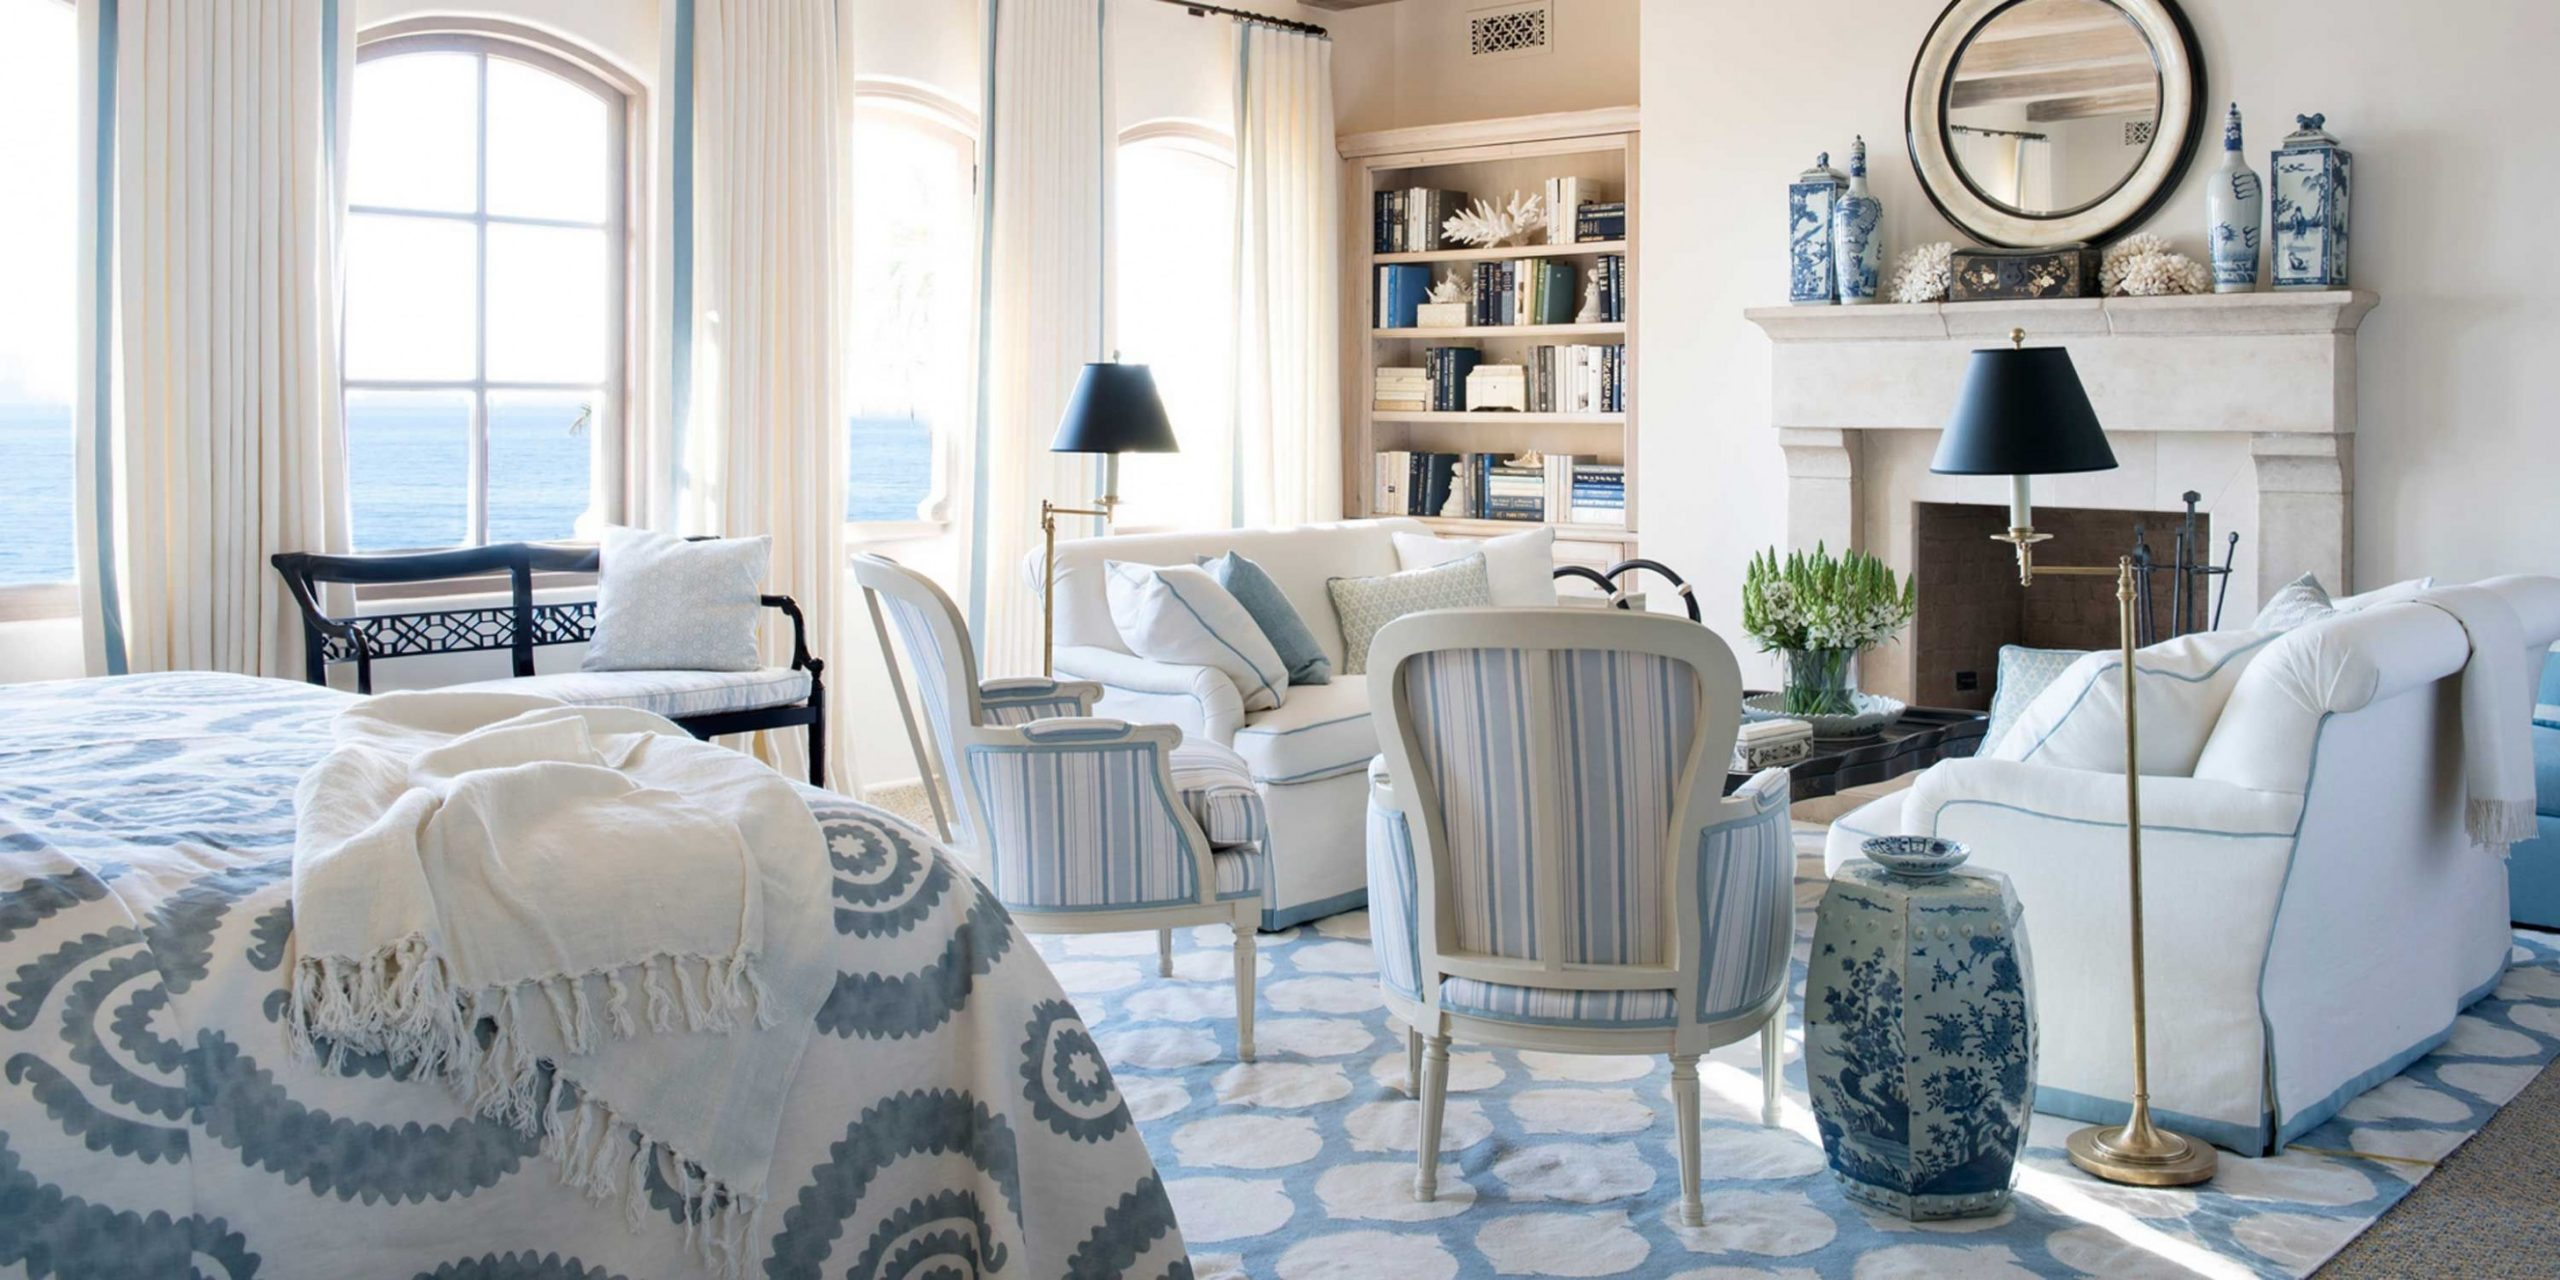 Blue and White Rooms - Decorating with Blue and White - Bedroom Ideas Blue And White